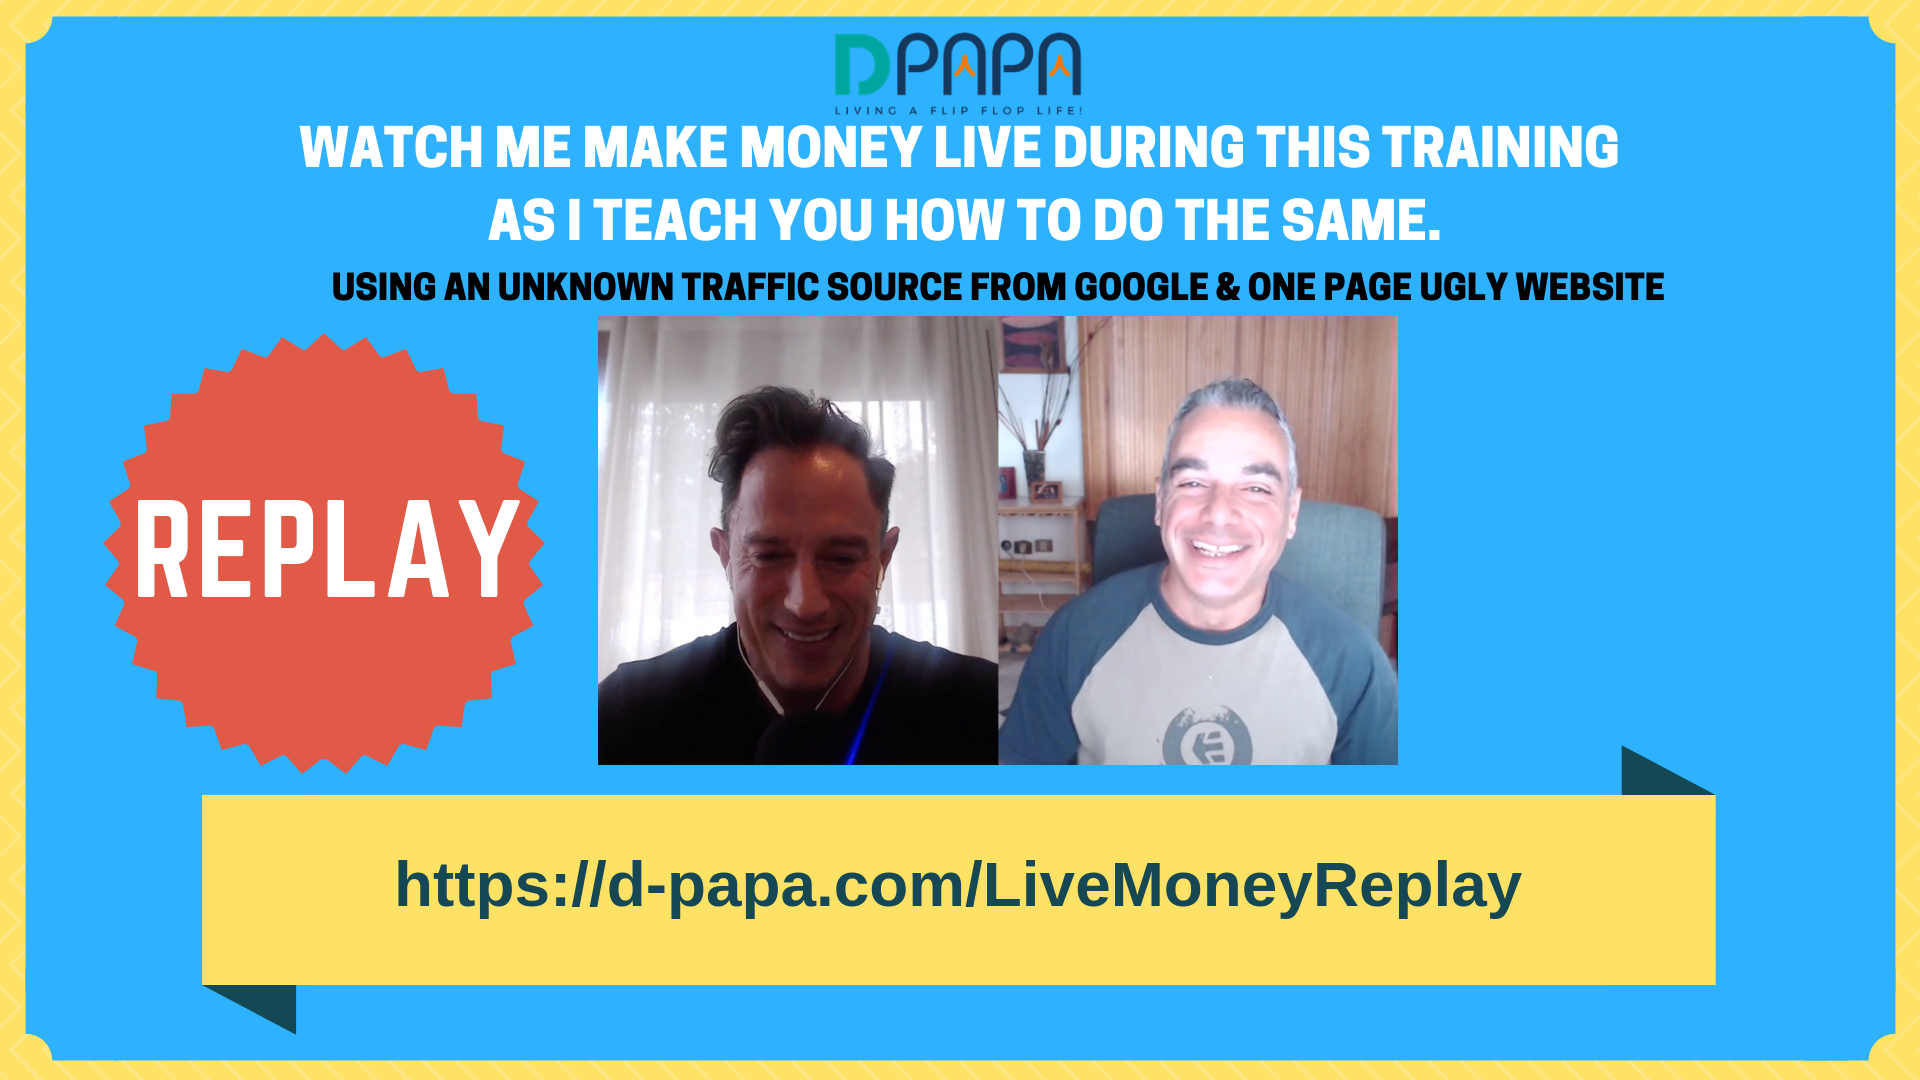 Watch Me Make Money Live During This Training As I Teach You How To Do the Same! 7